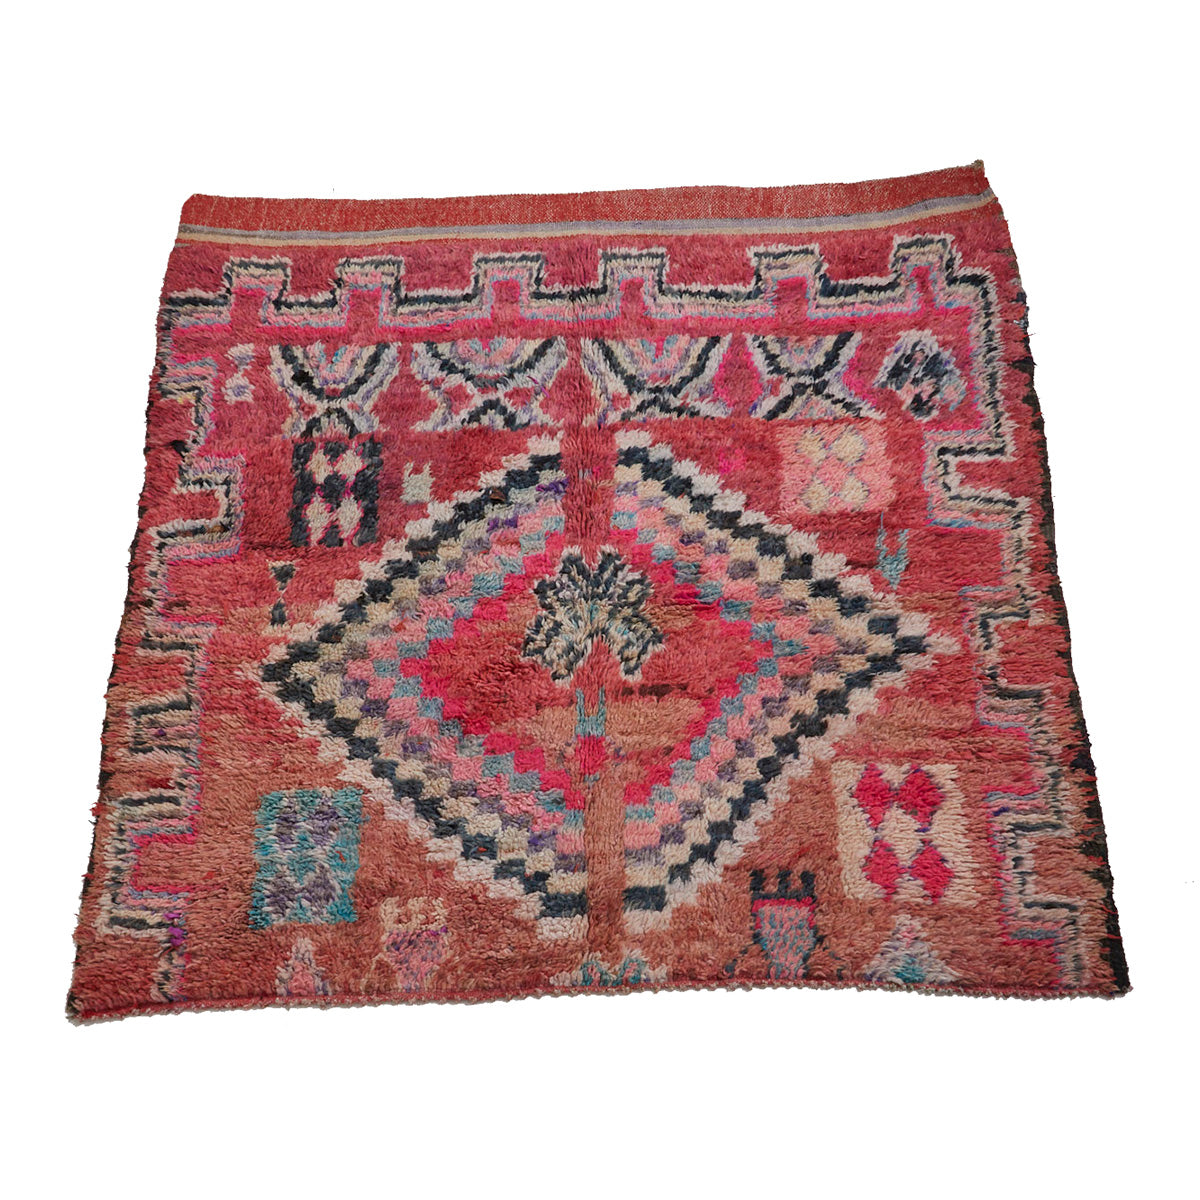 Authentic boujaad Moroccan berber carpet - Kantara | Moroccan Rugs